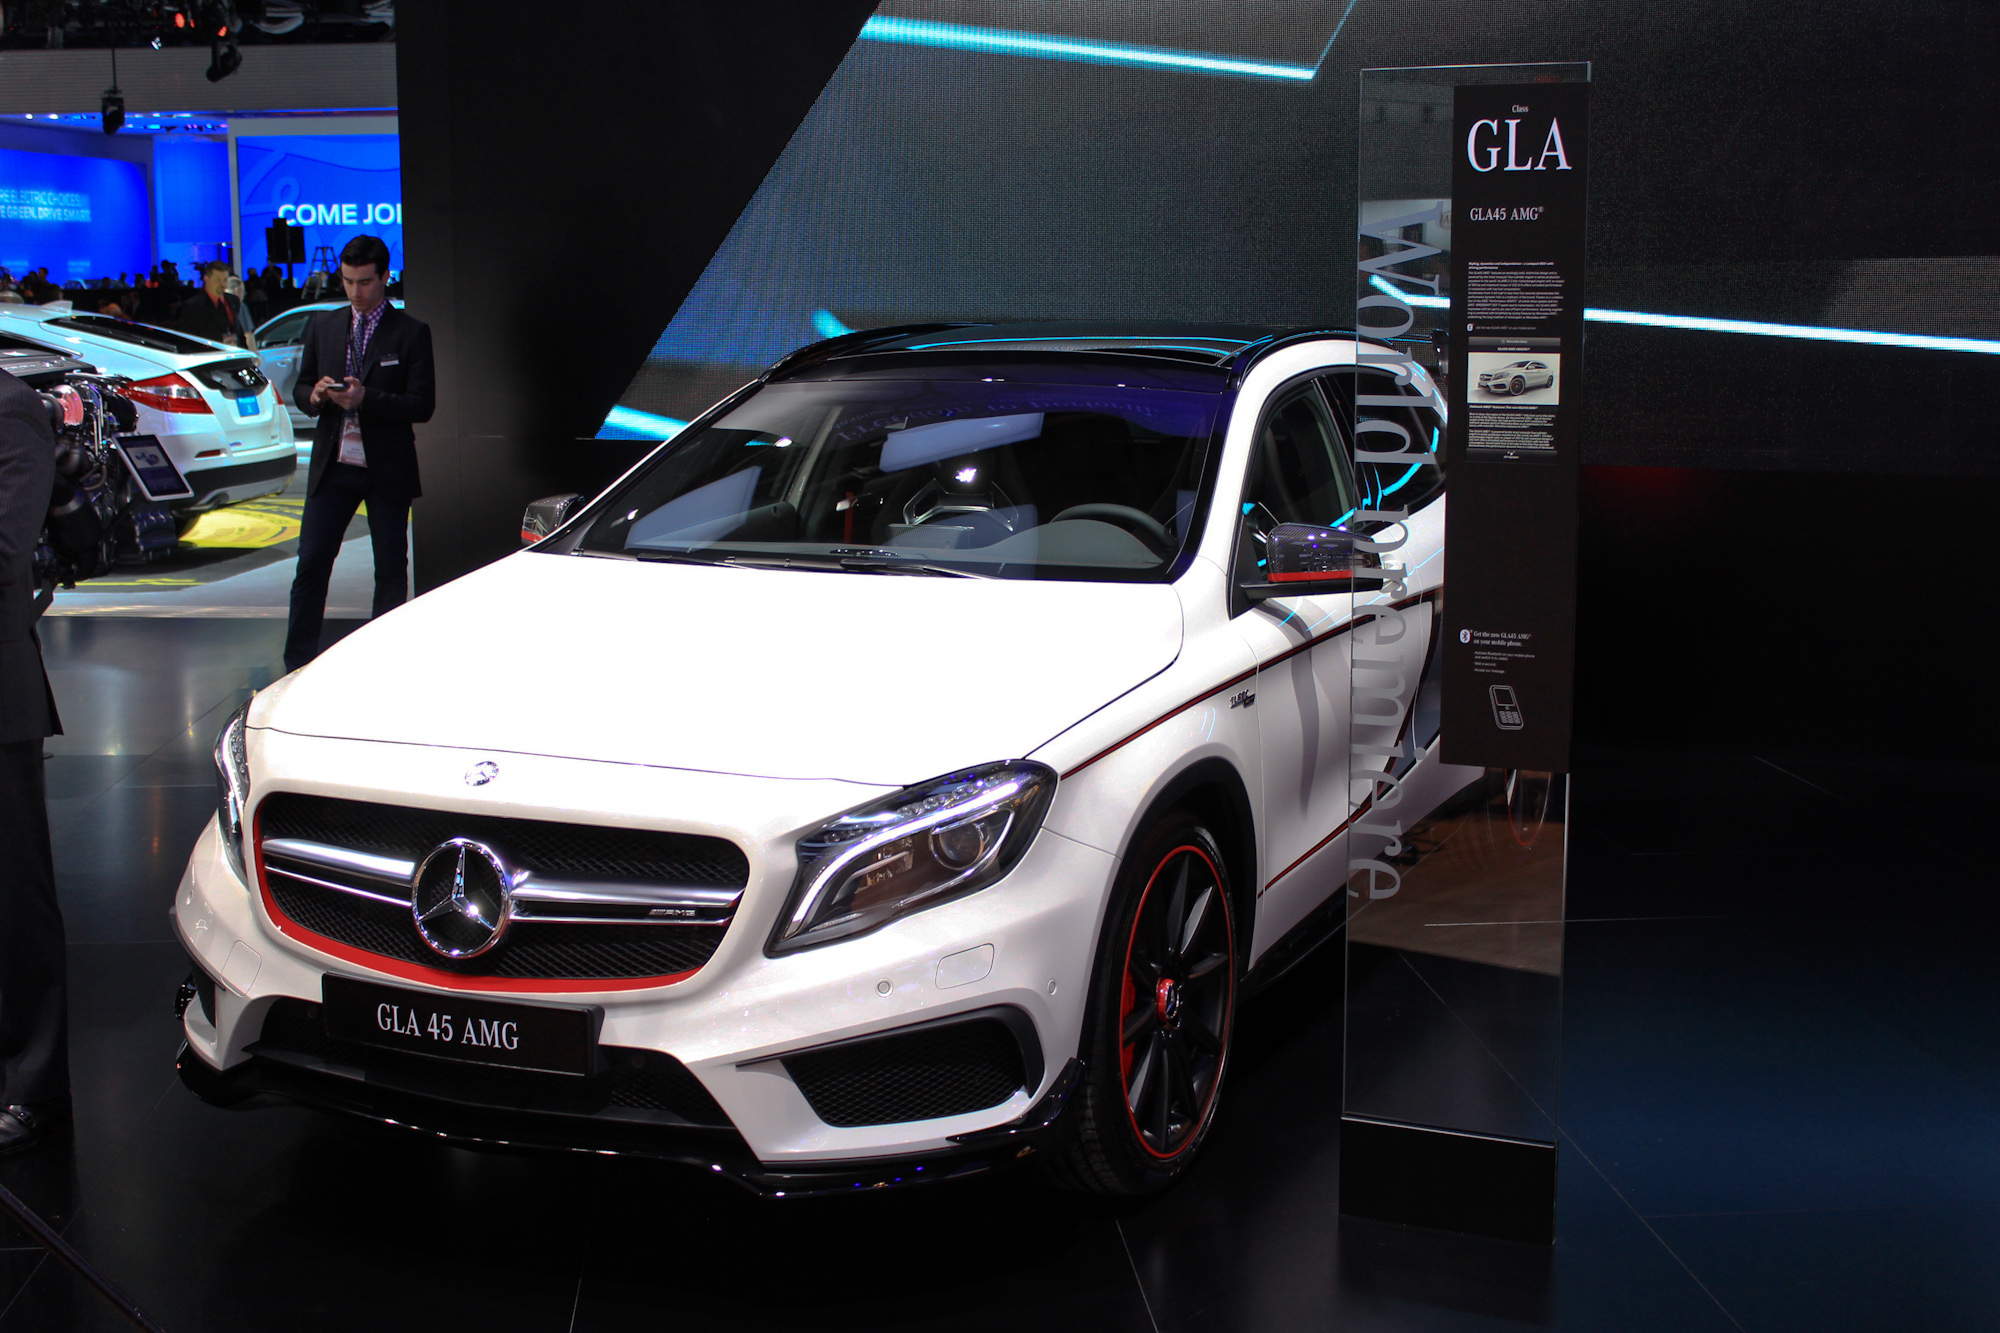 2015 mercedes benz gla45 amg full details live photos video. Black Bedroom Furniture Sets. Home Design Ideas